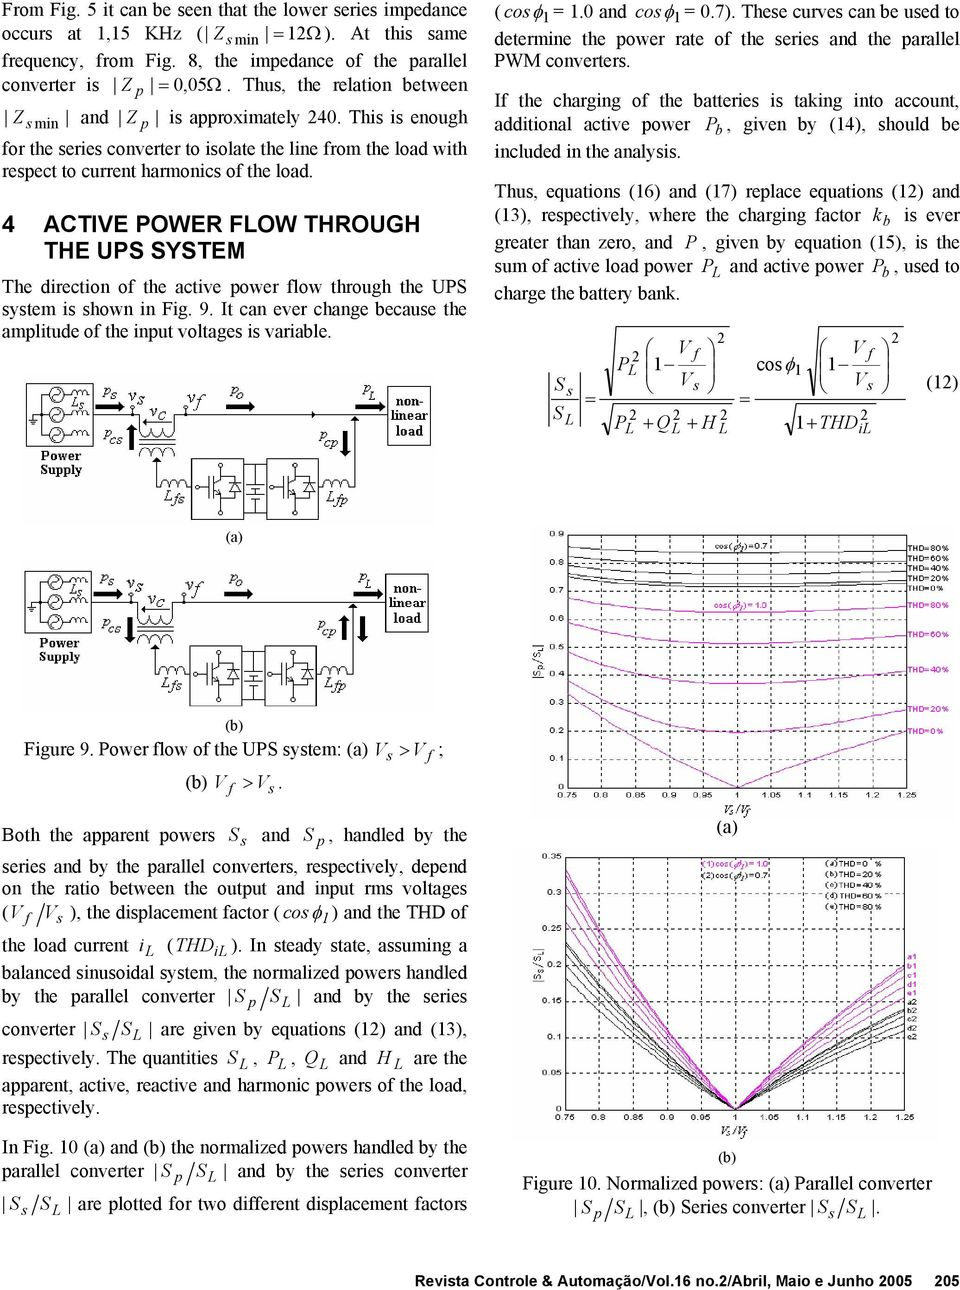 4 ACTIVE POWER FLOW THROUGH THE UPS SYSTEM Th dirction o th activ powr low through th UPS ytm i hown in Fig. 9. It can vr chang bcau th amplitud o th input voltag i variabl. ( co 1 = 1.0 and co 1 = 0.